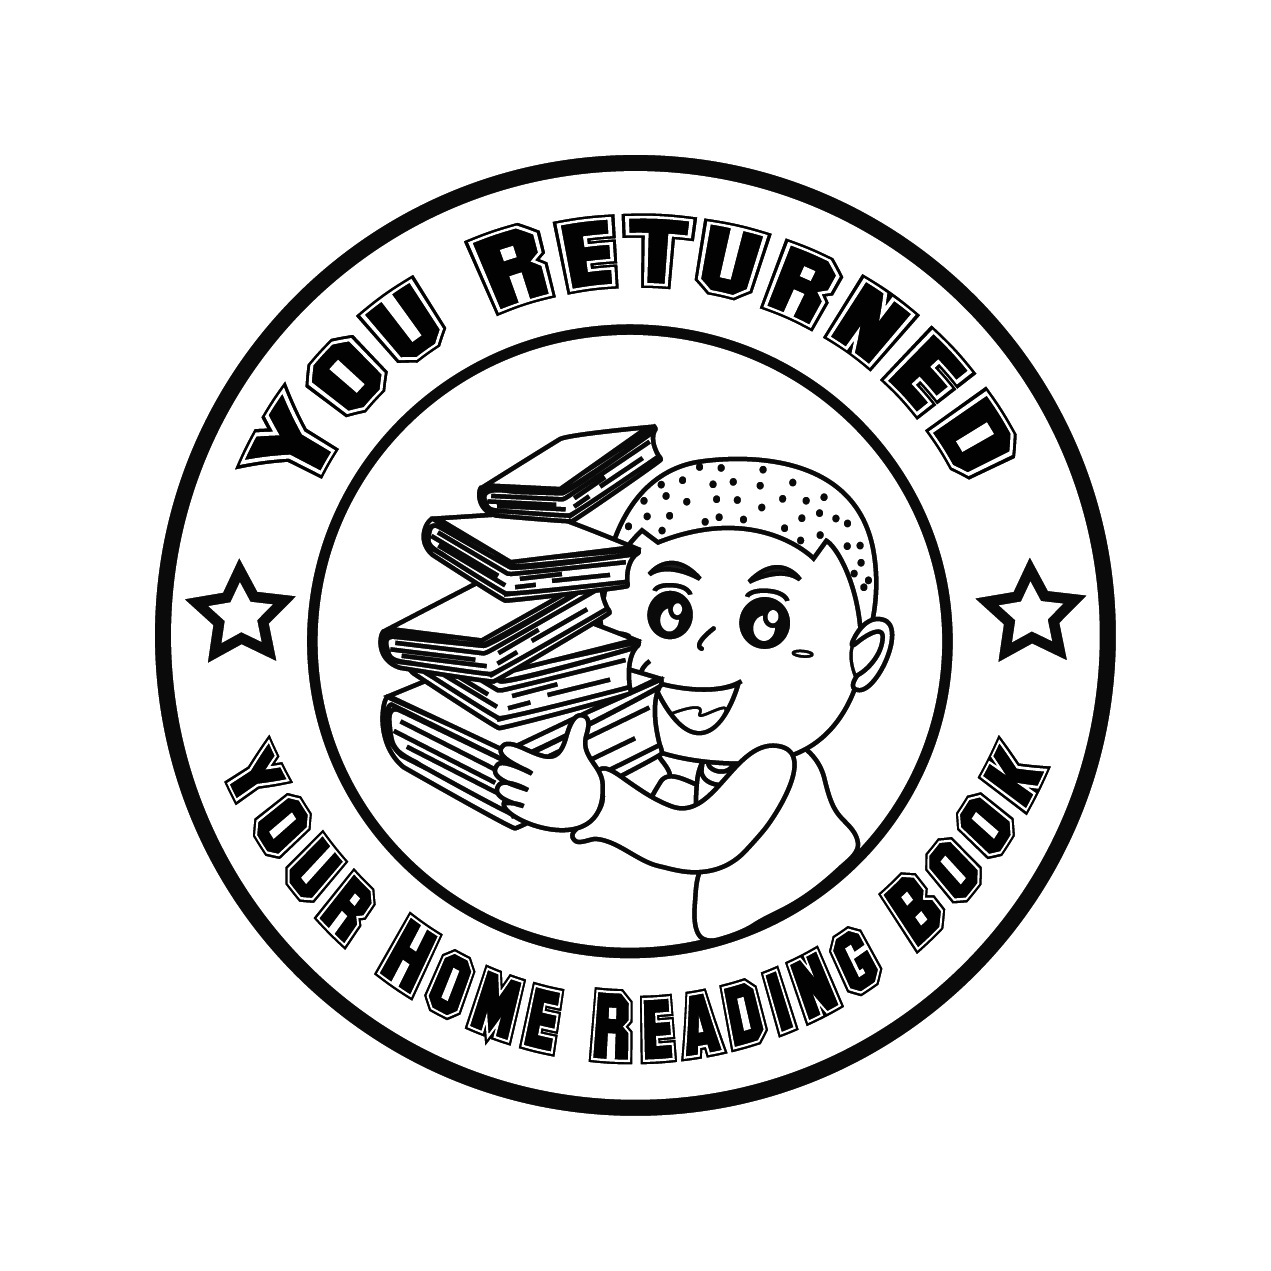 Home Reading Stamp V1